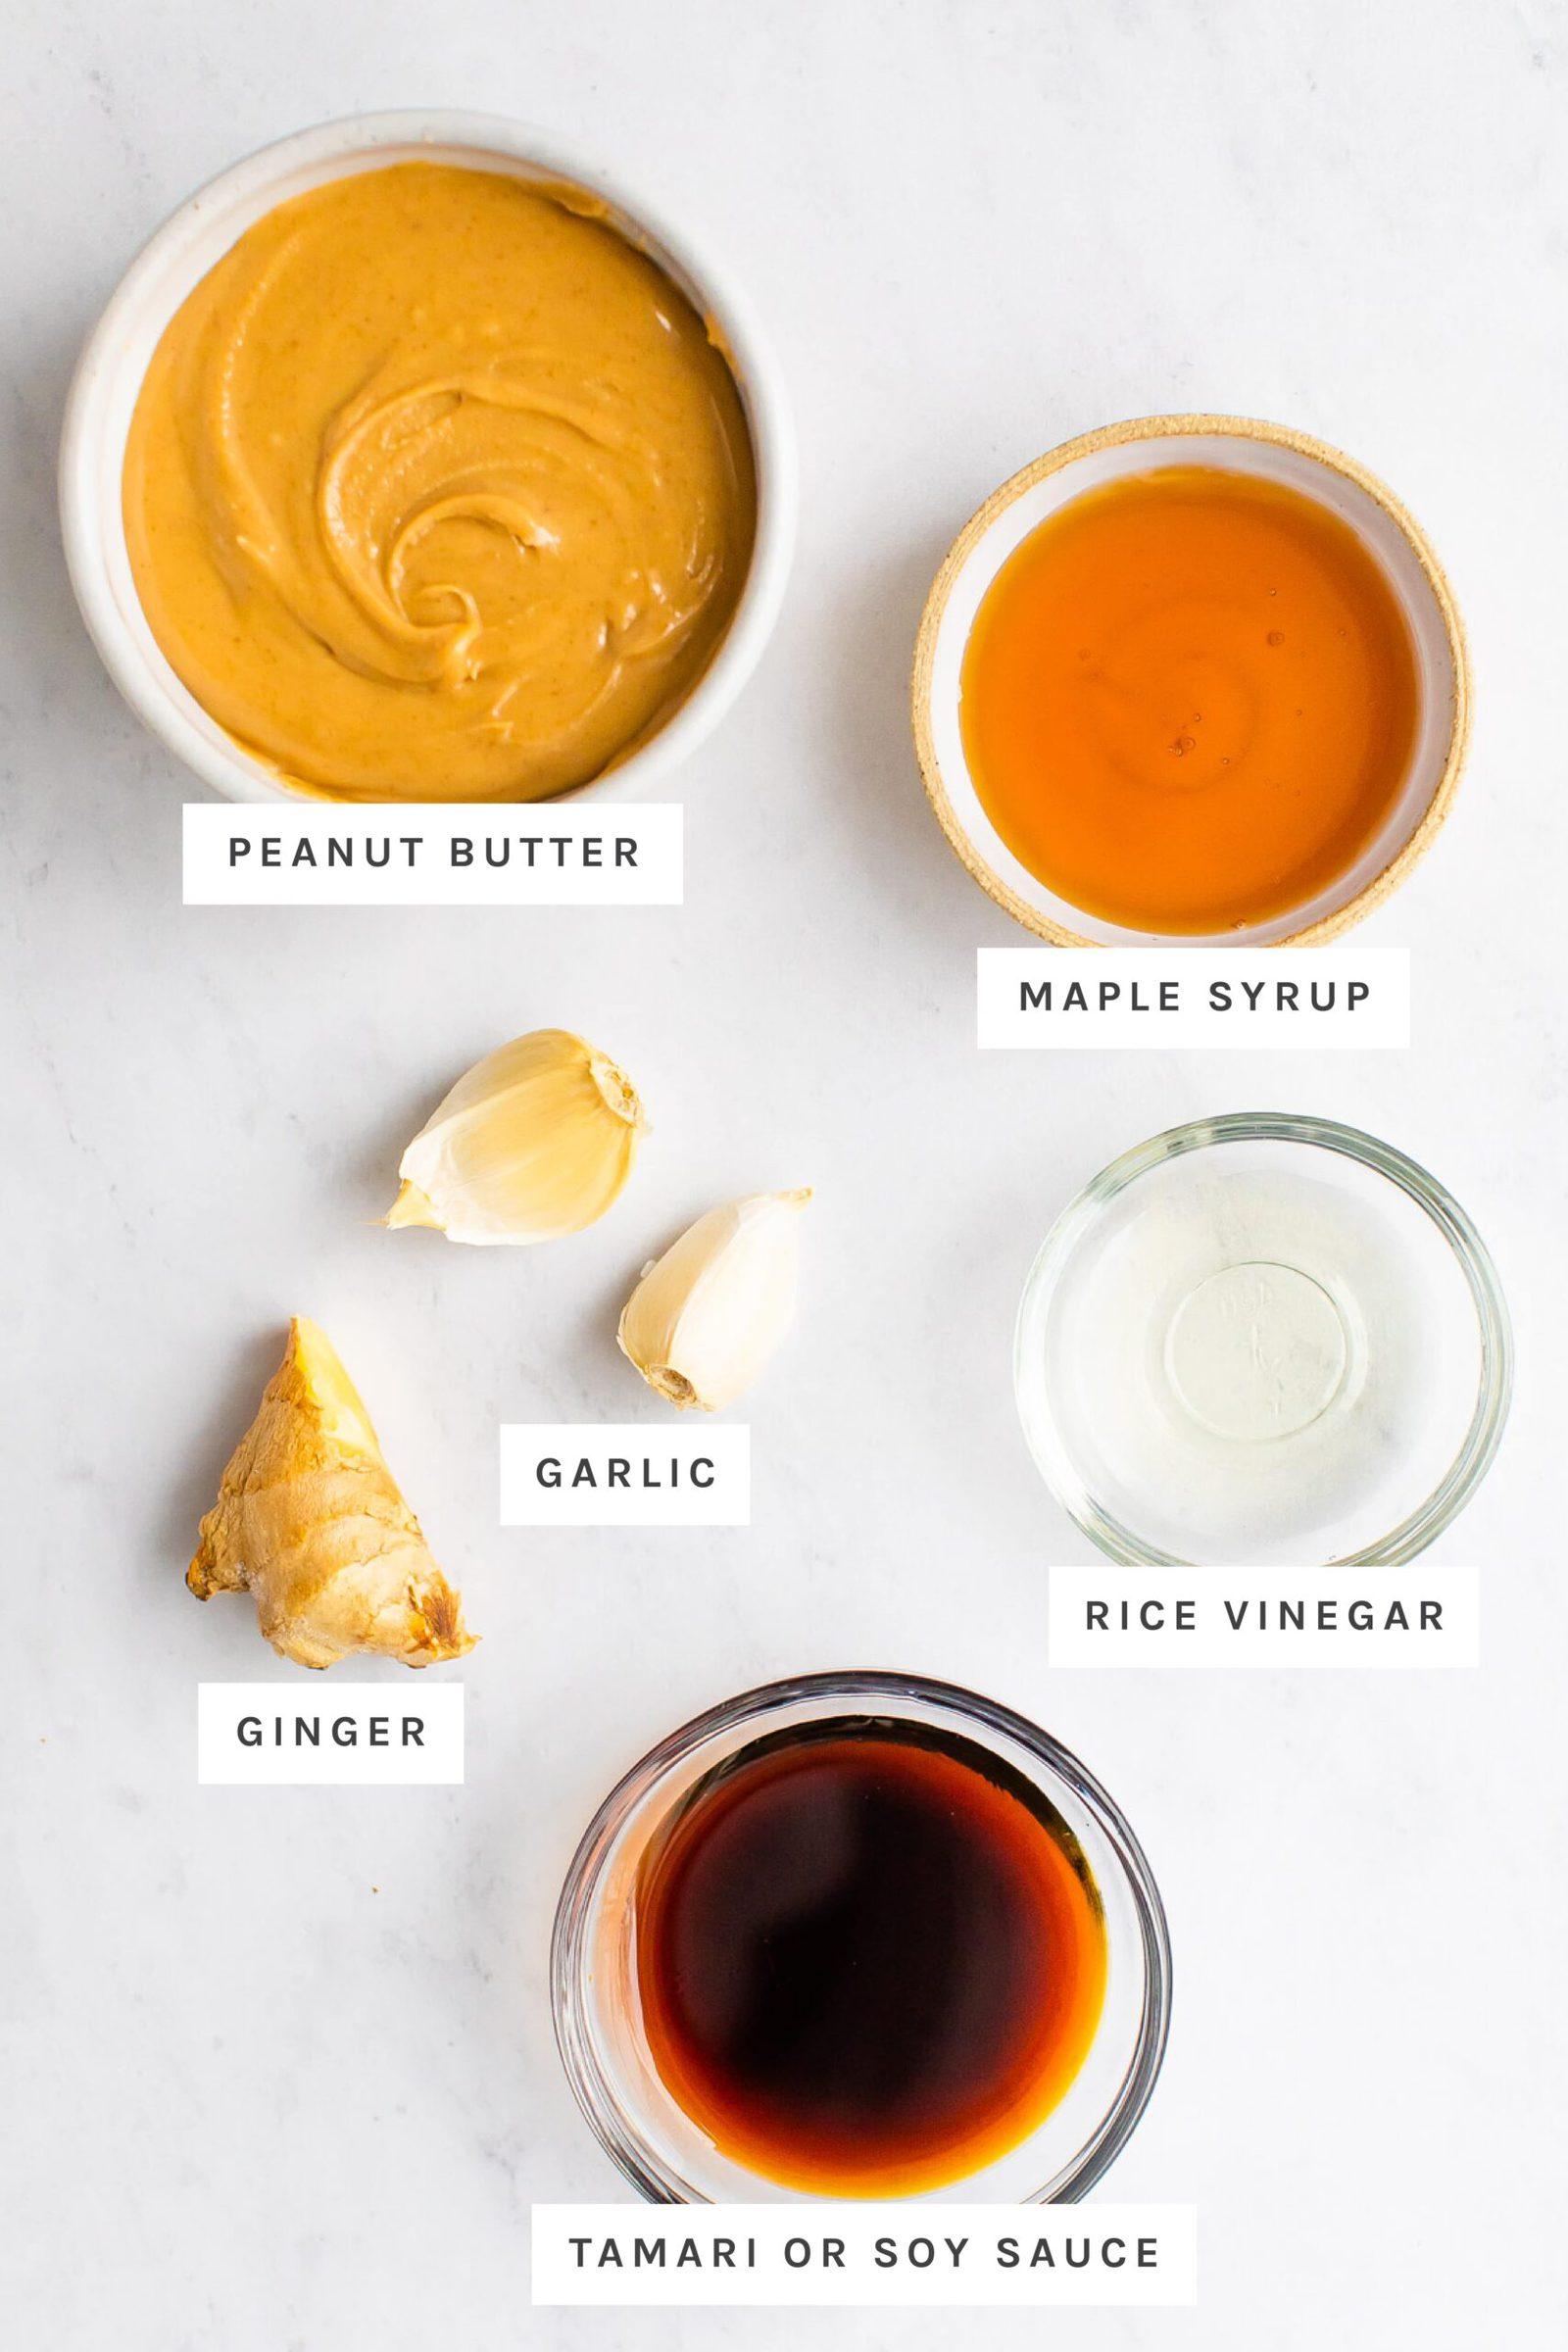 Peanut butter, maple syrup, garlic, ginger, rice vinegar and tamari measured out.